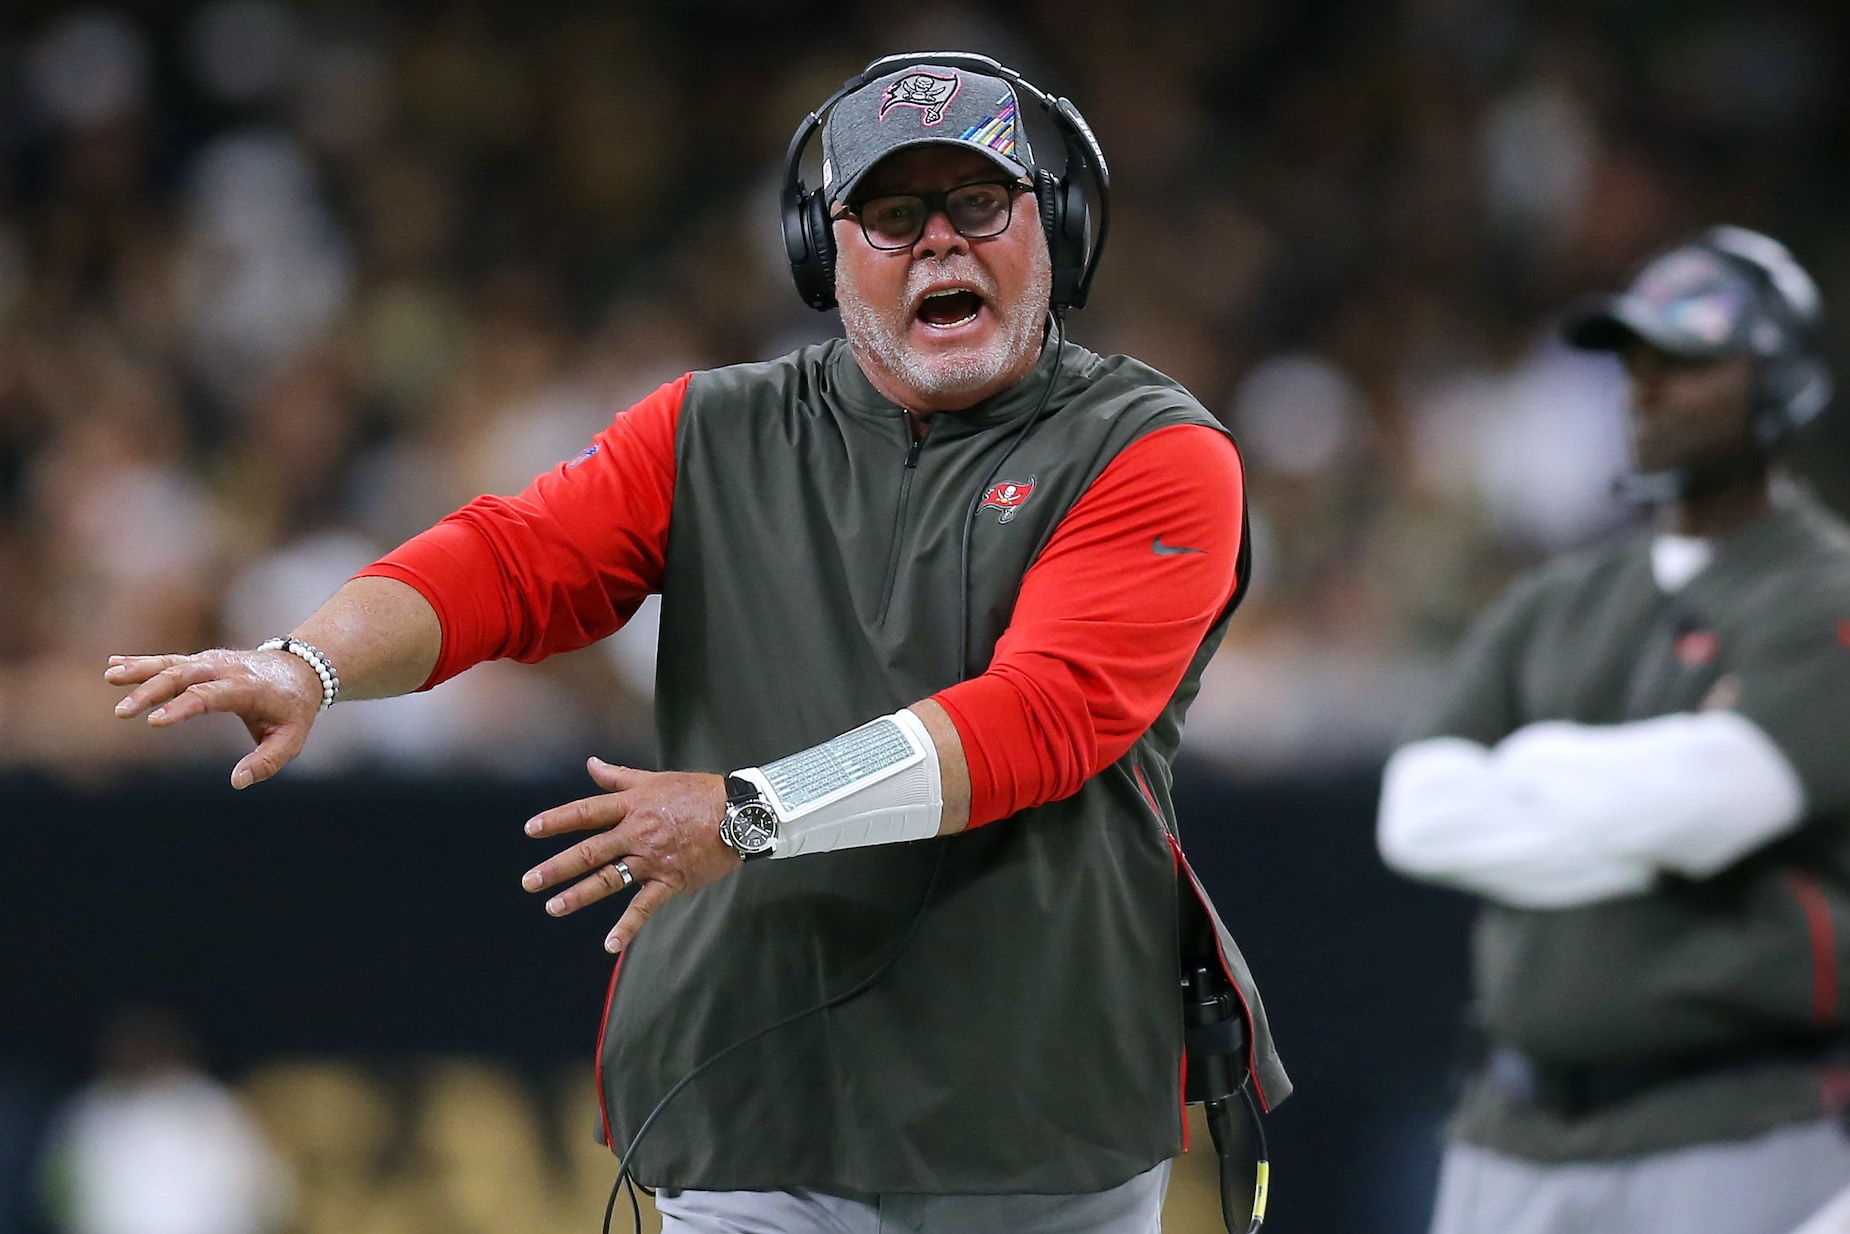 Bruce Arians Put the Entire Tampa Bay Buccaneers Roster on Notice Ahead of the 2021 NFL Season: 'This Team Hasn't Done Sh*t'